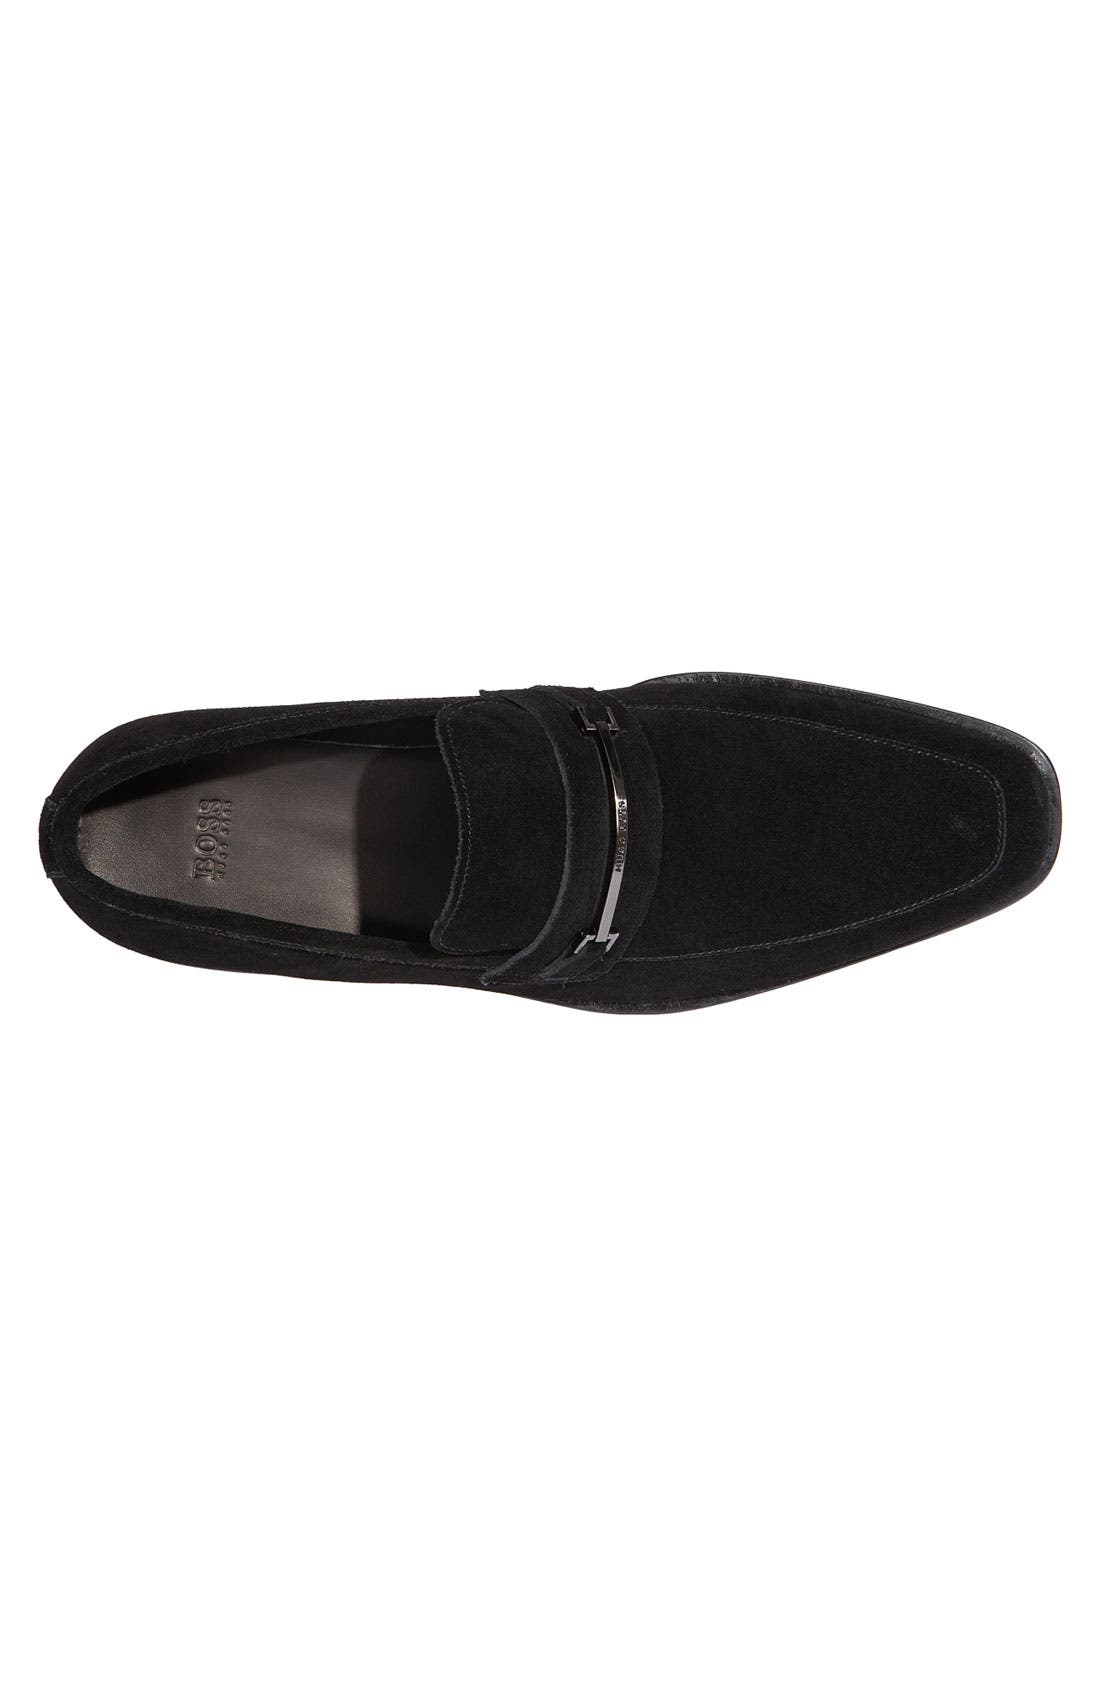 Alternate Image 3  - BOSS Black 'Carl' Loafer (Men)